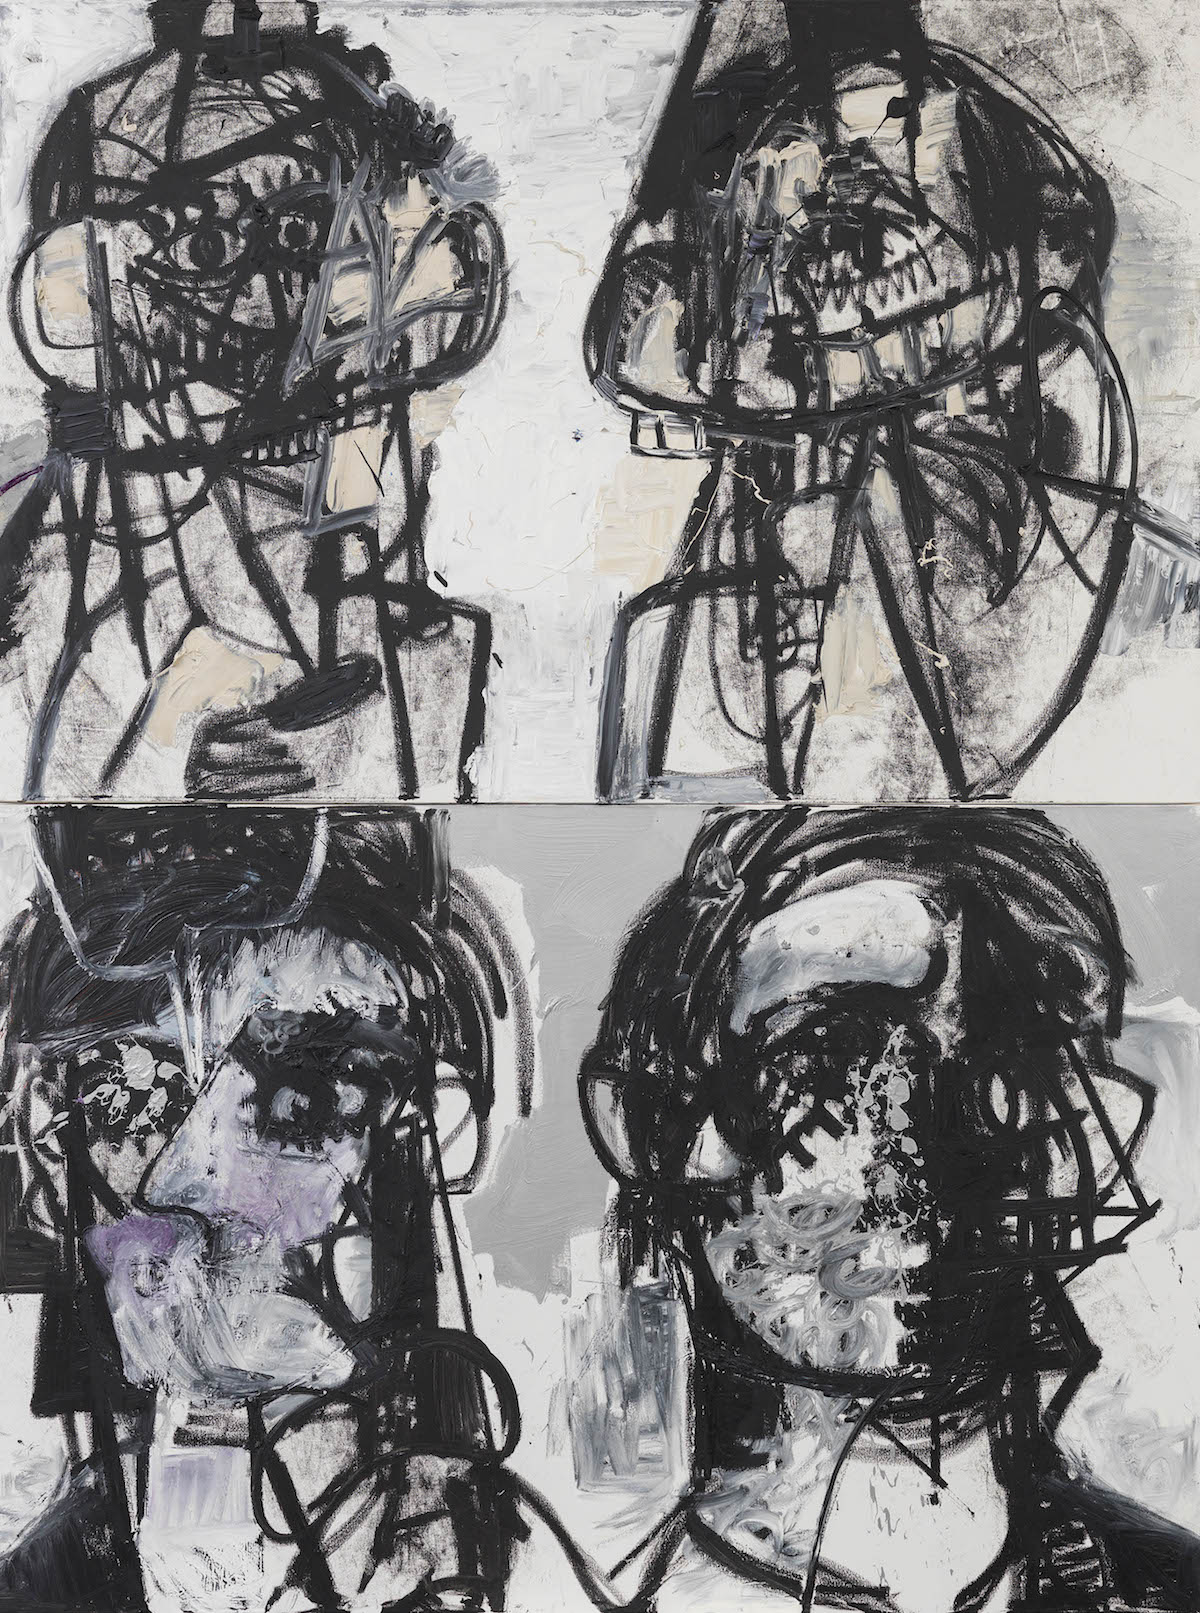 George Condo, Self Portraits Facing Cancer 1, 2015 (courtesy of Spruth Magers)